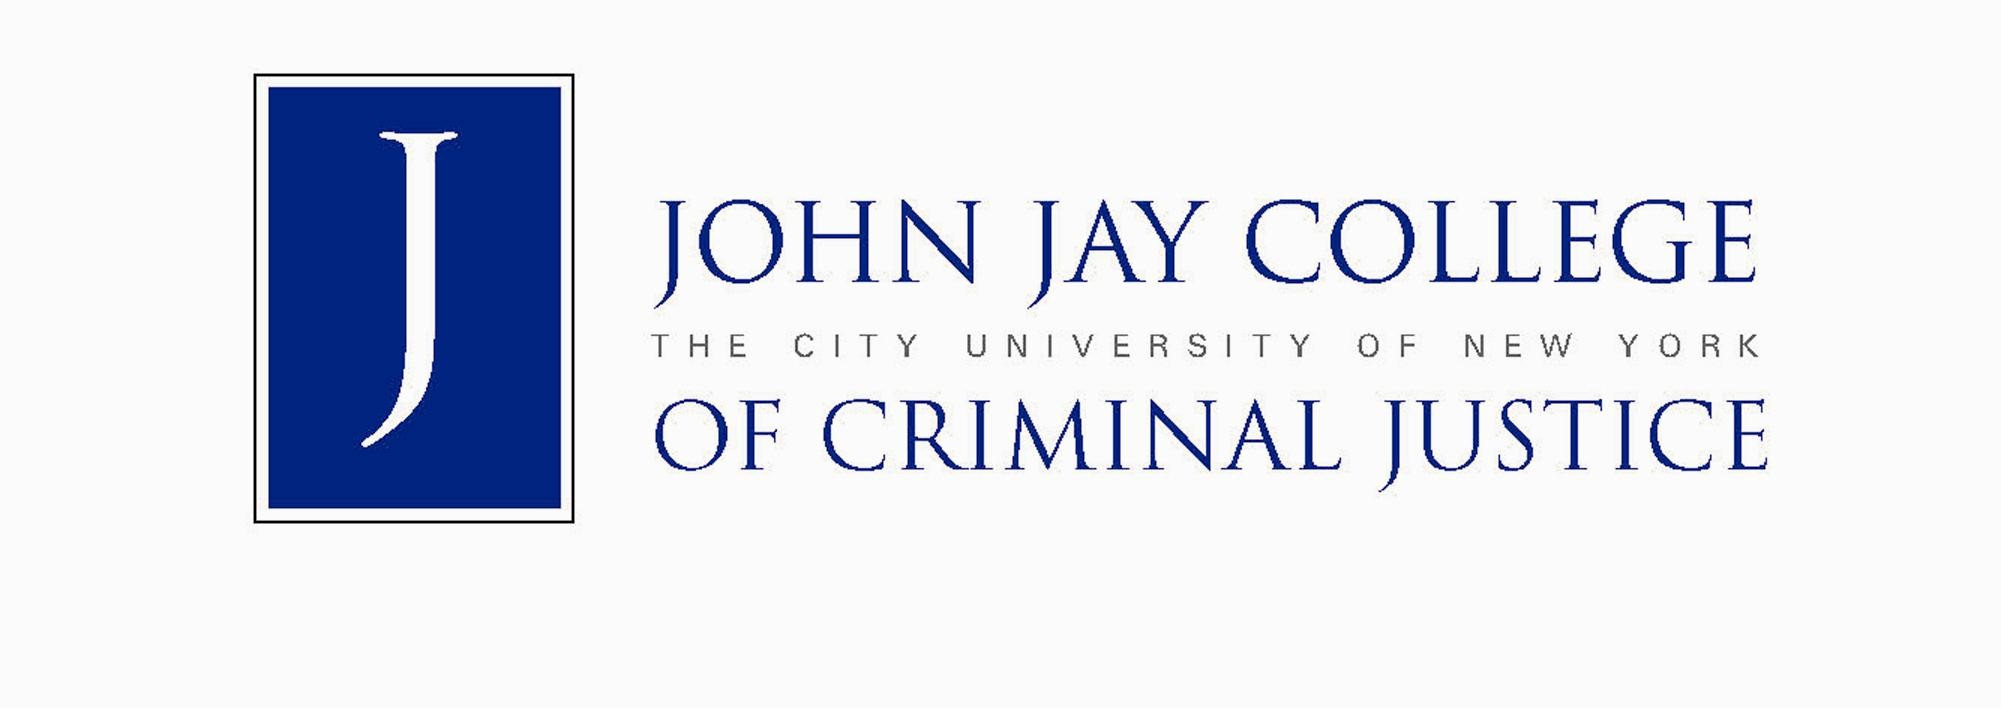 Criminal Justice best things to study in college